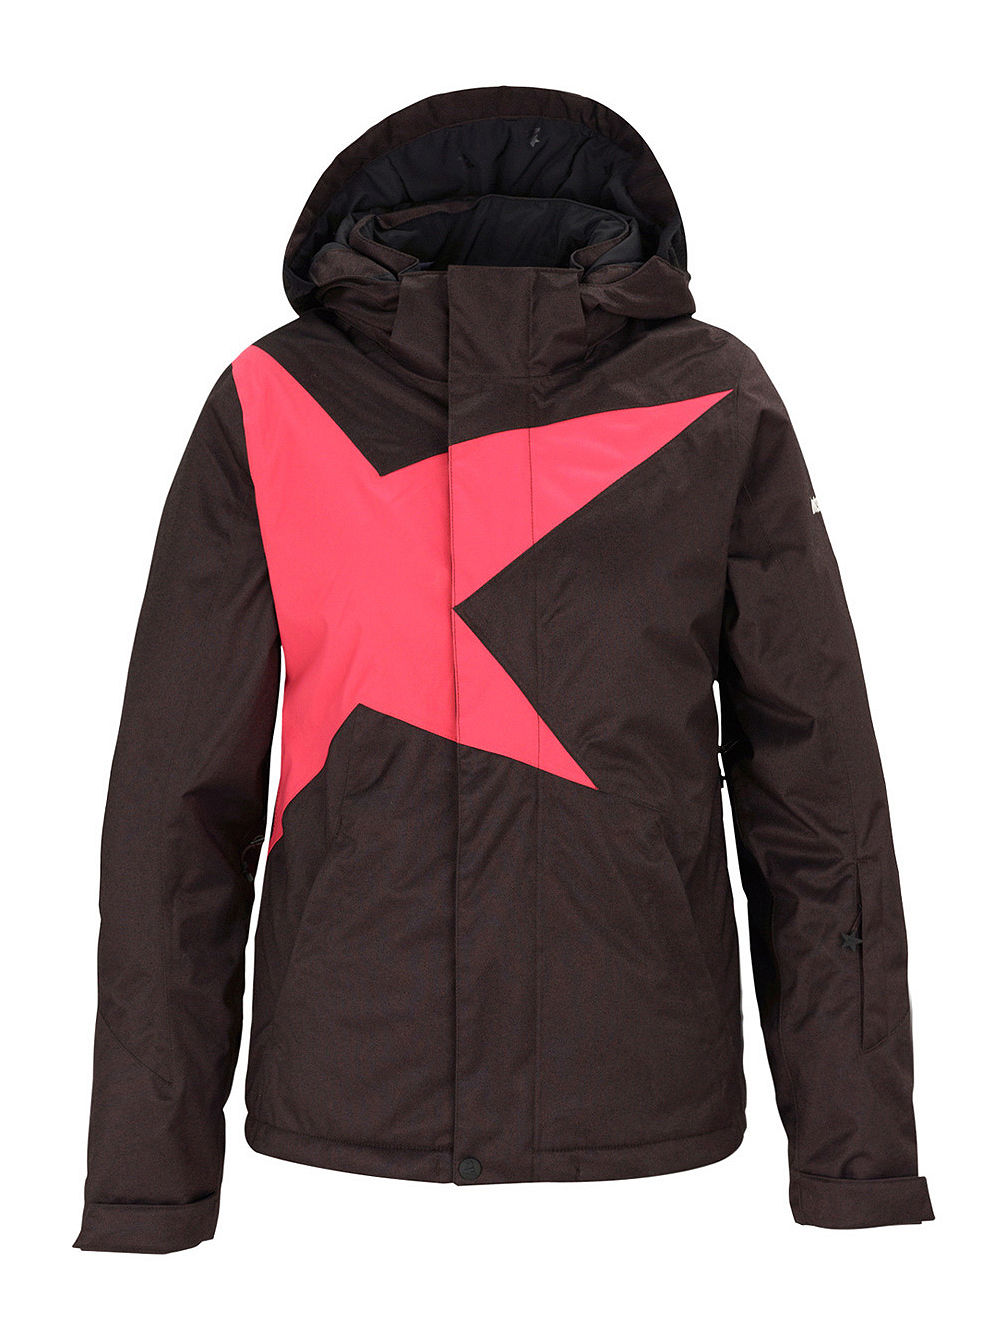 Mira Twill Jacket youth